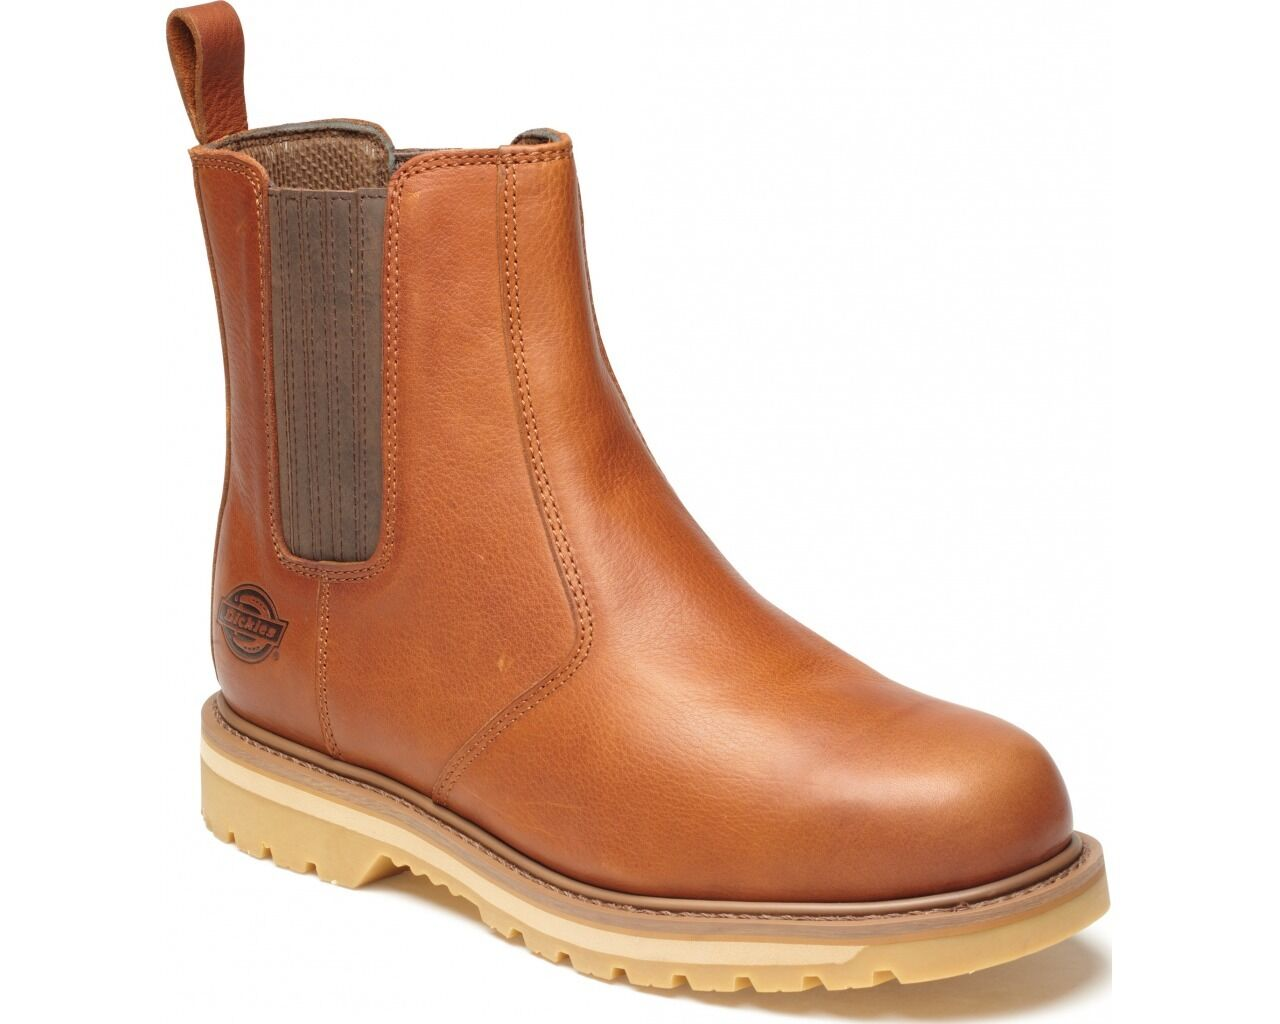 Dickies Trinity Dealer Boot, Leather, Non-Safety, Size Size Non-Safety, 6-12 UK - FN23700 3d2194